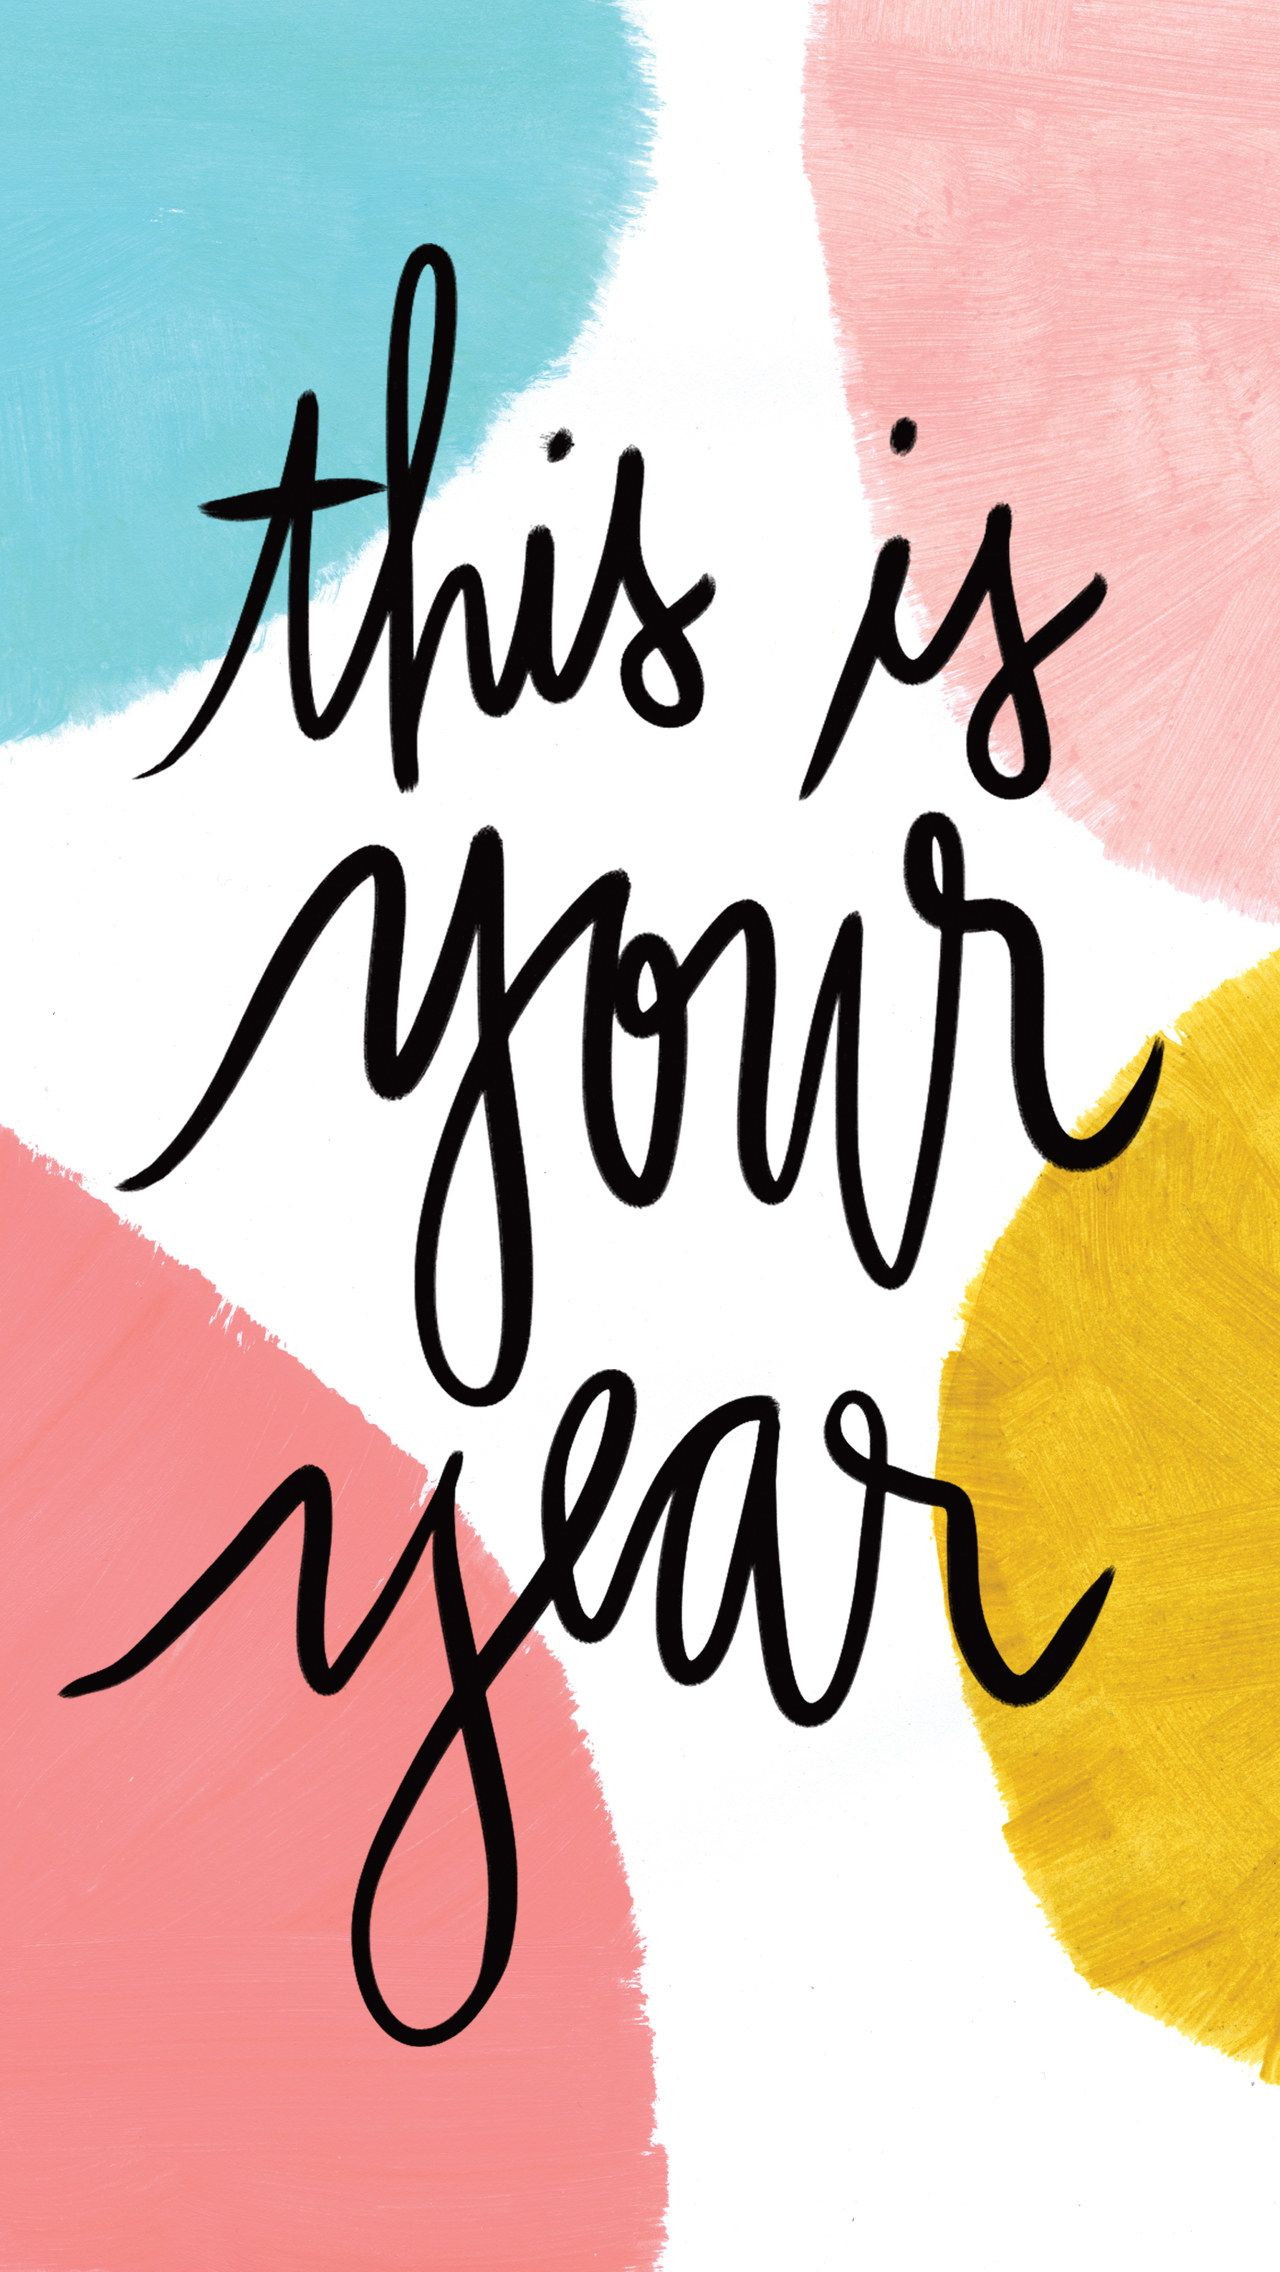 This message that will totally set the tone for the year ahead: